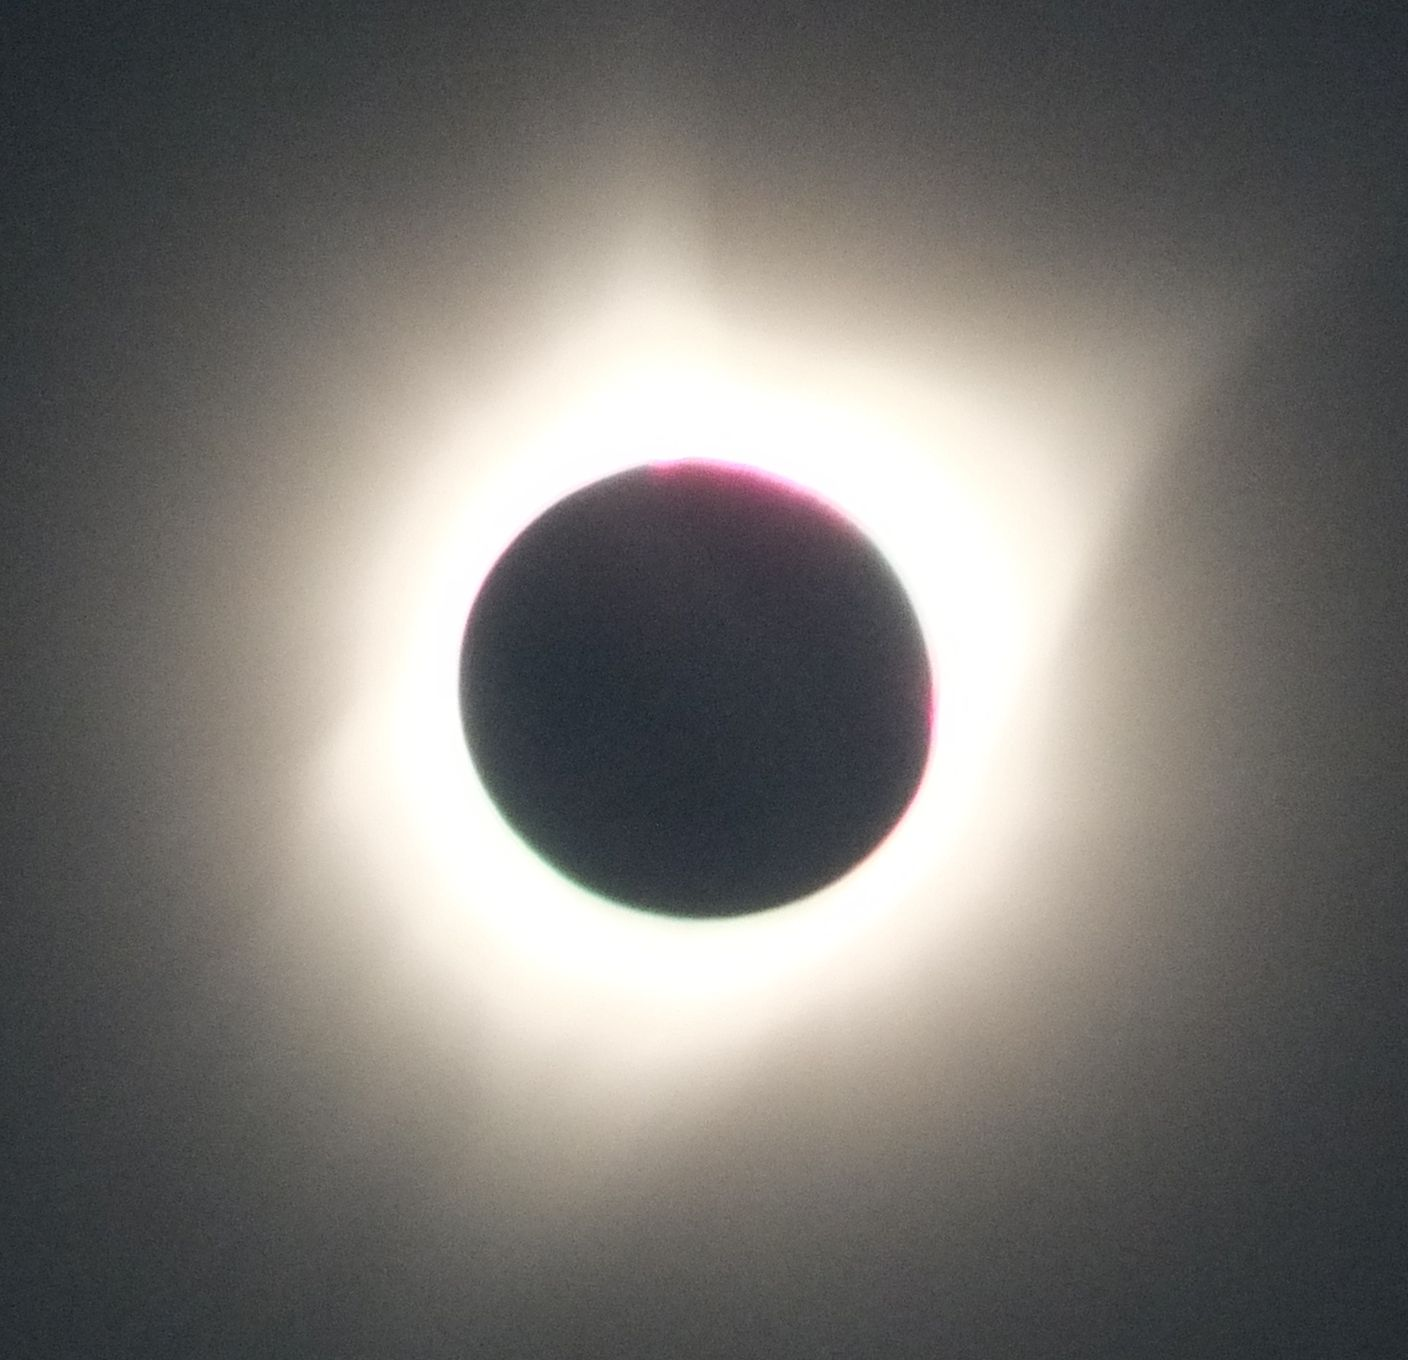 Full eclipse from Salem, Oregon - Photo by Michael Grimbergen